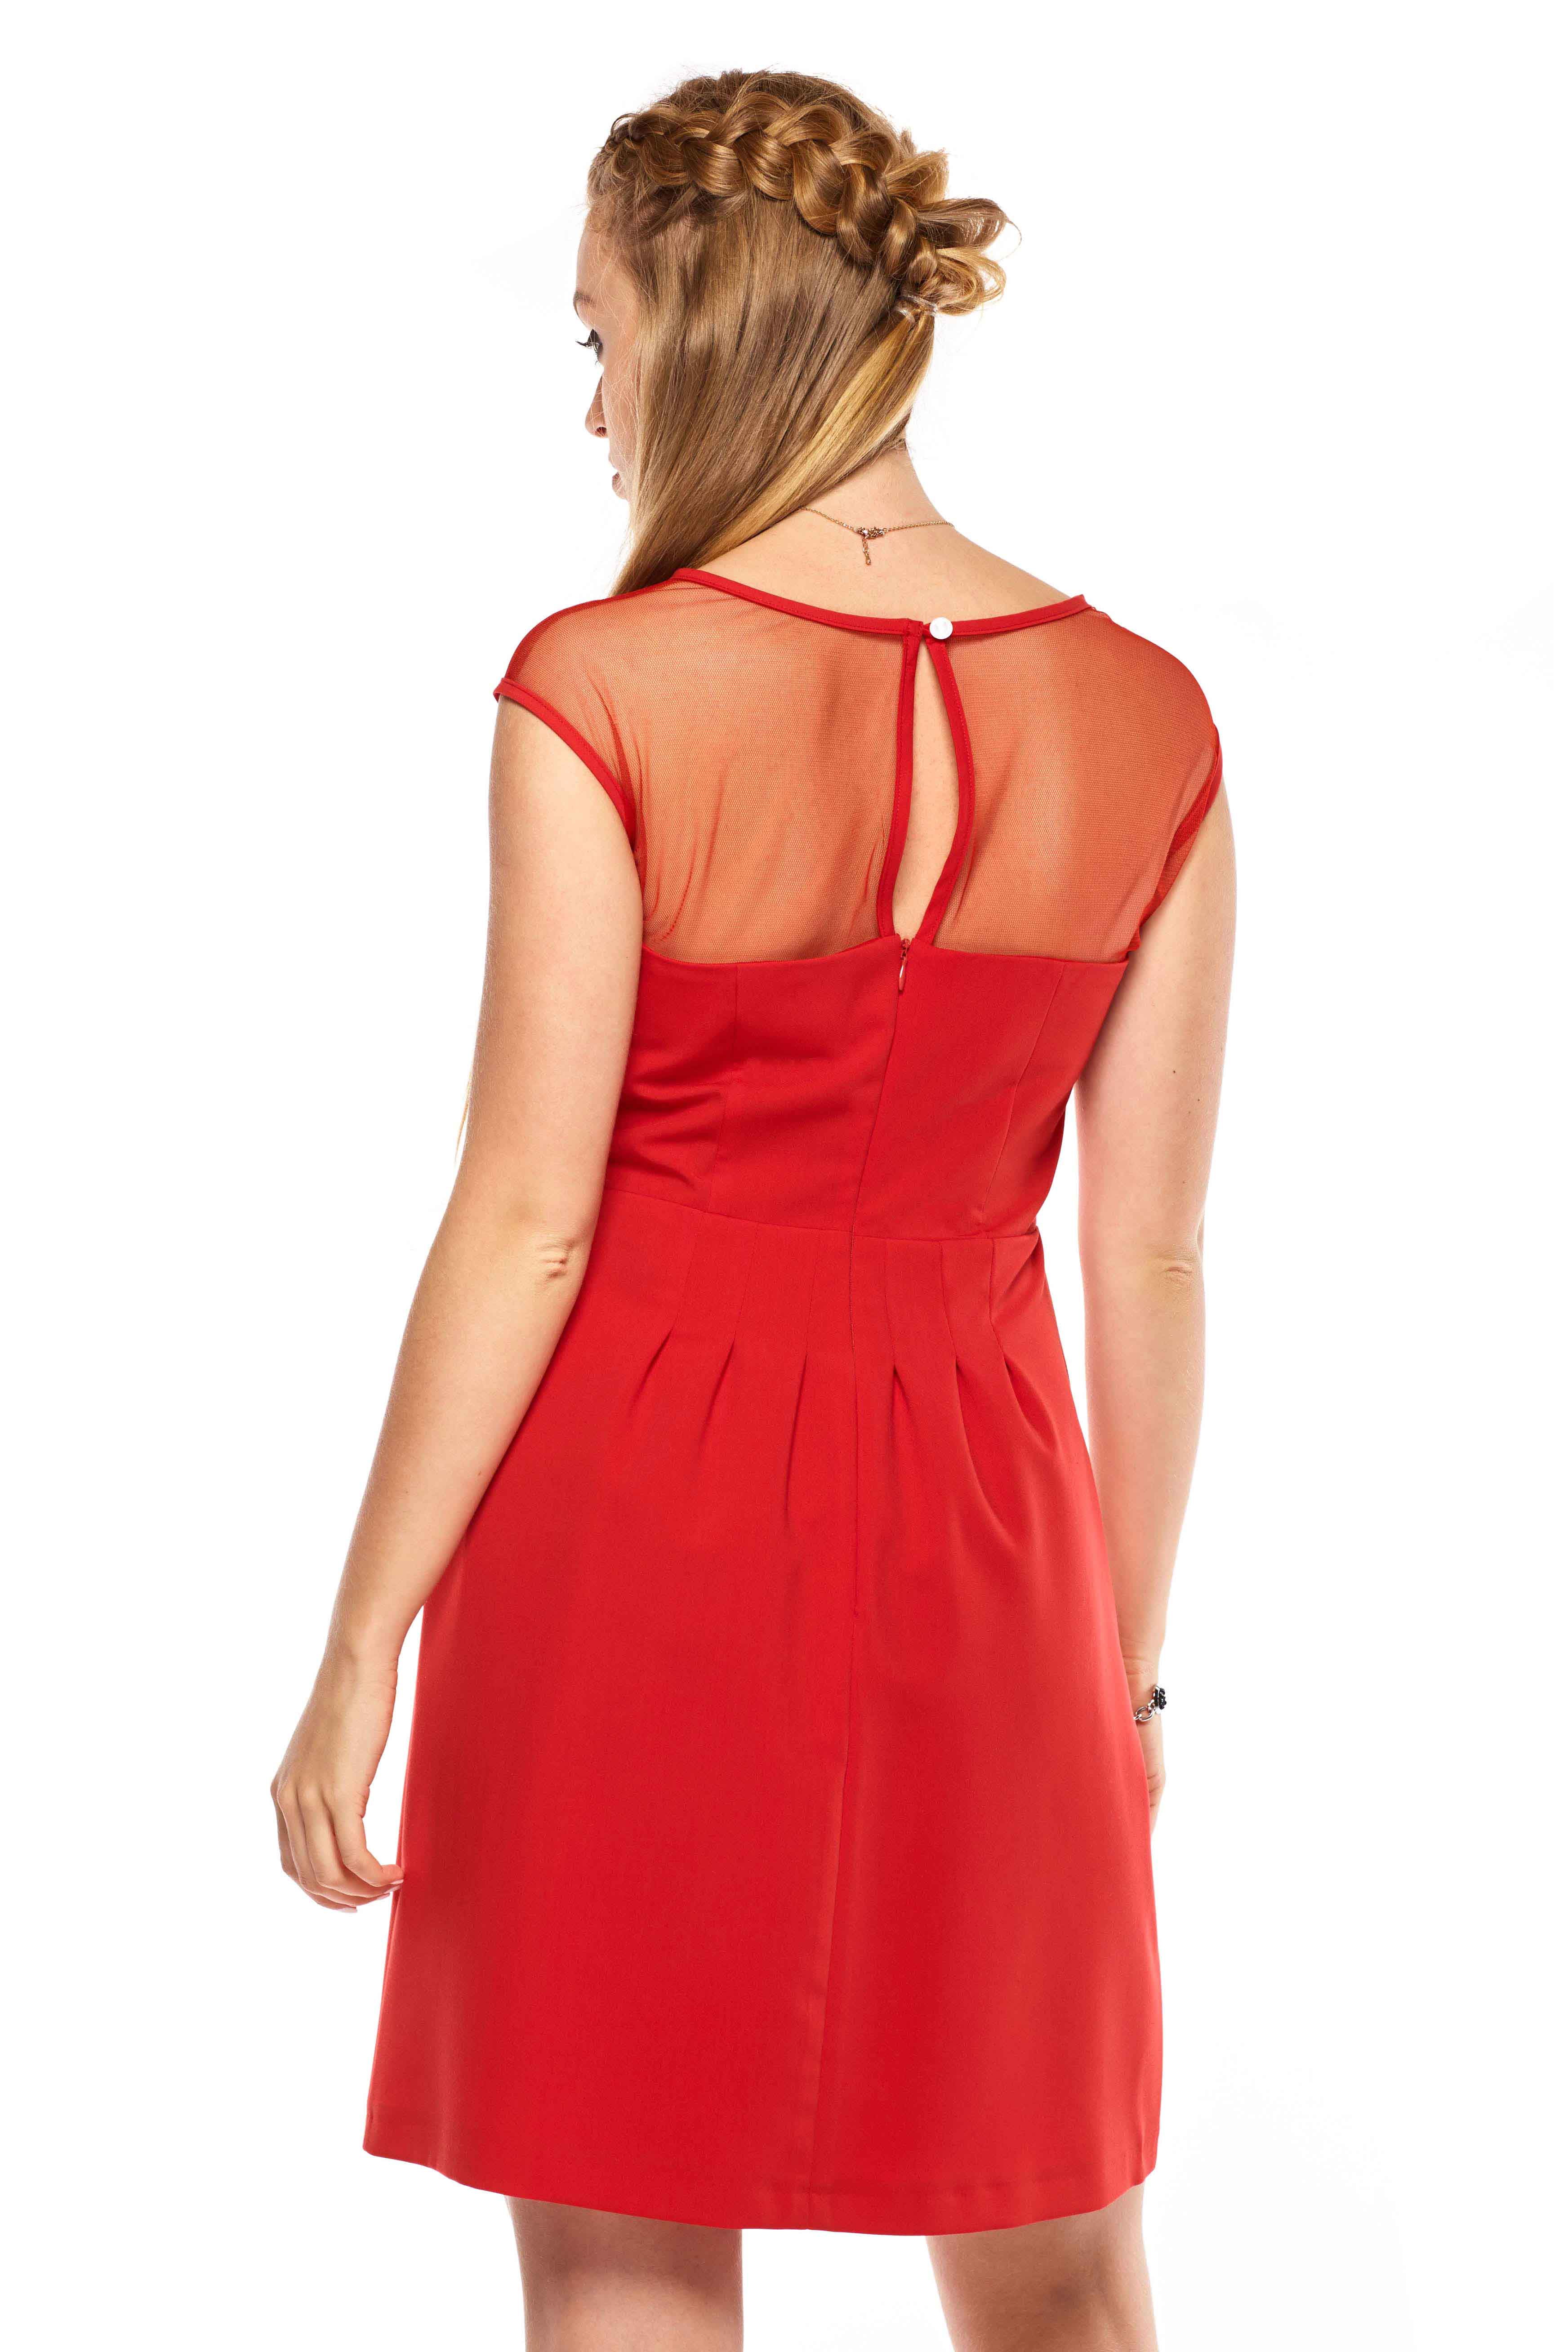 Catherine dress in red